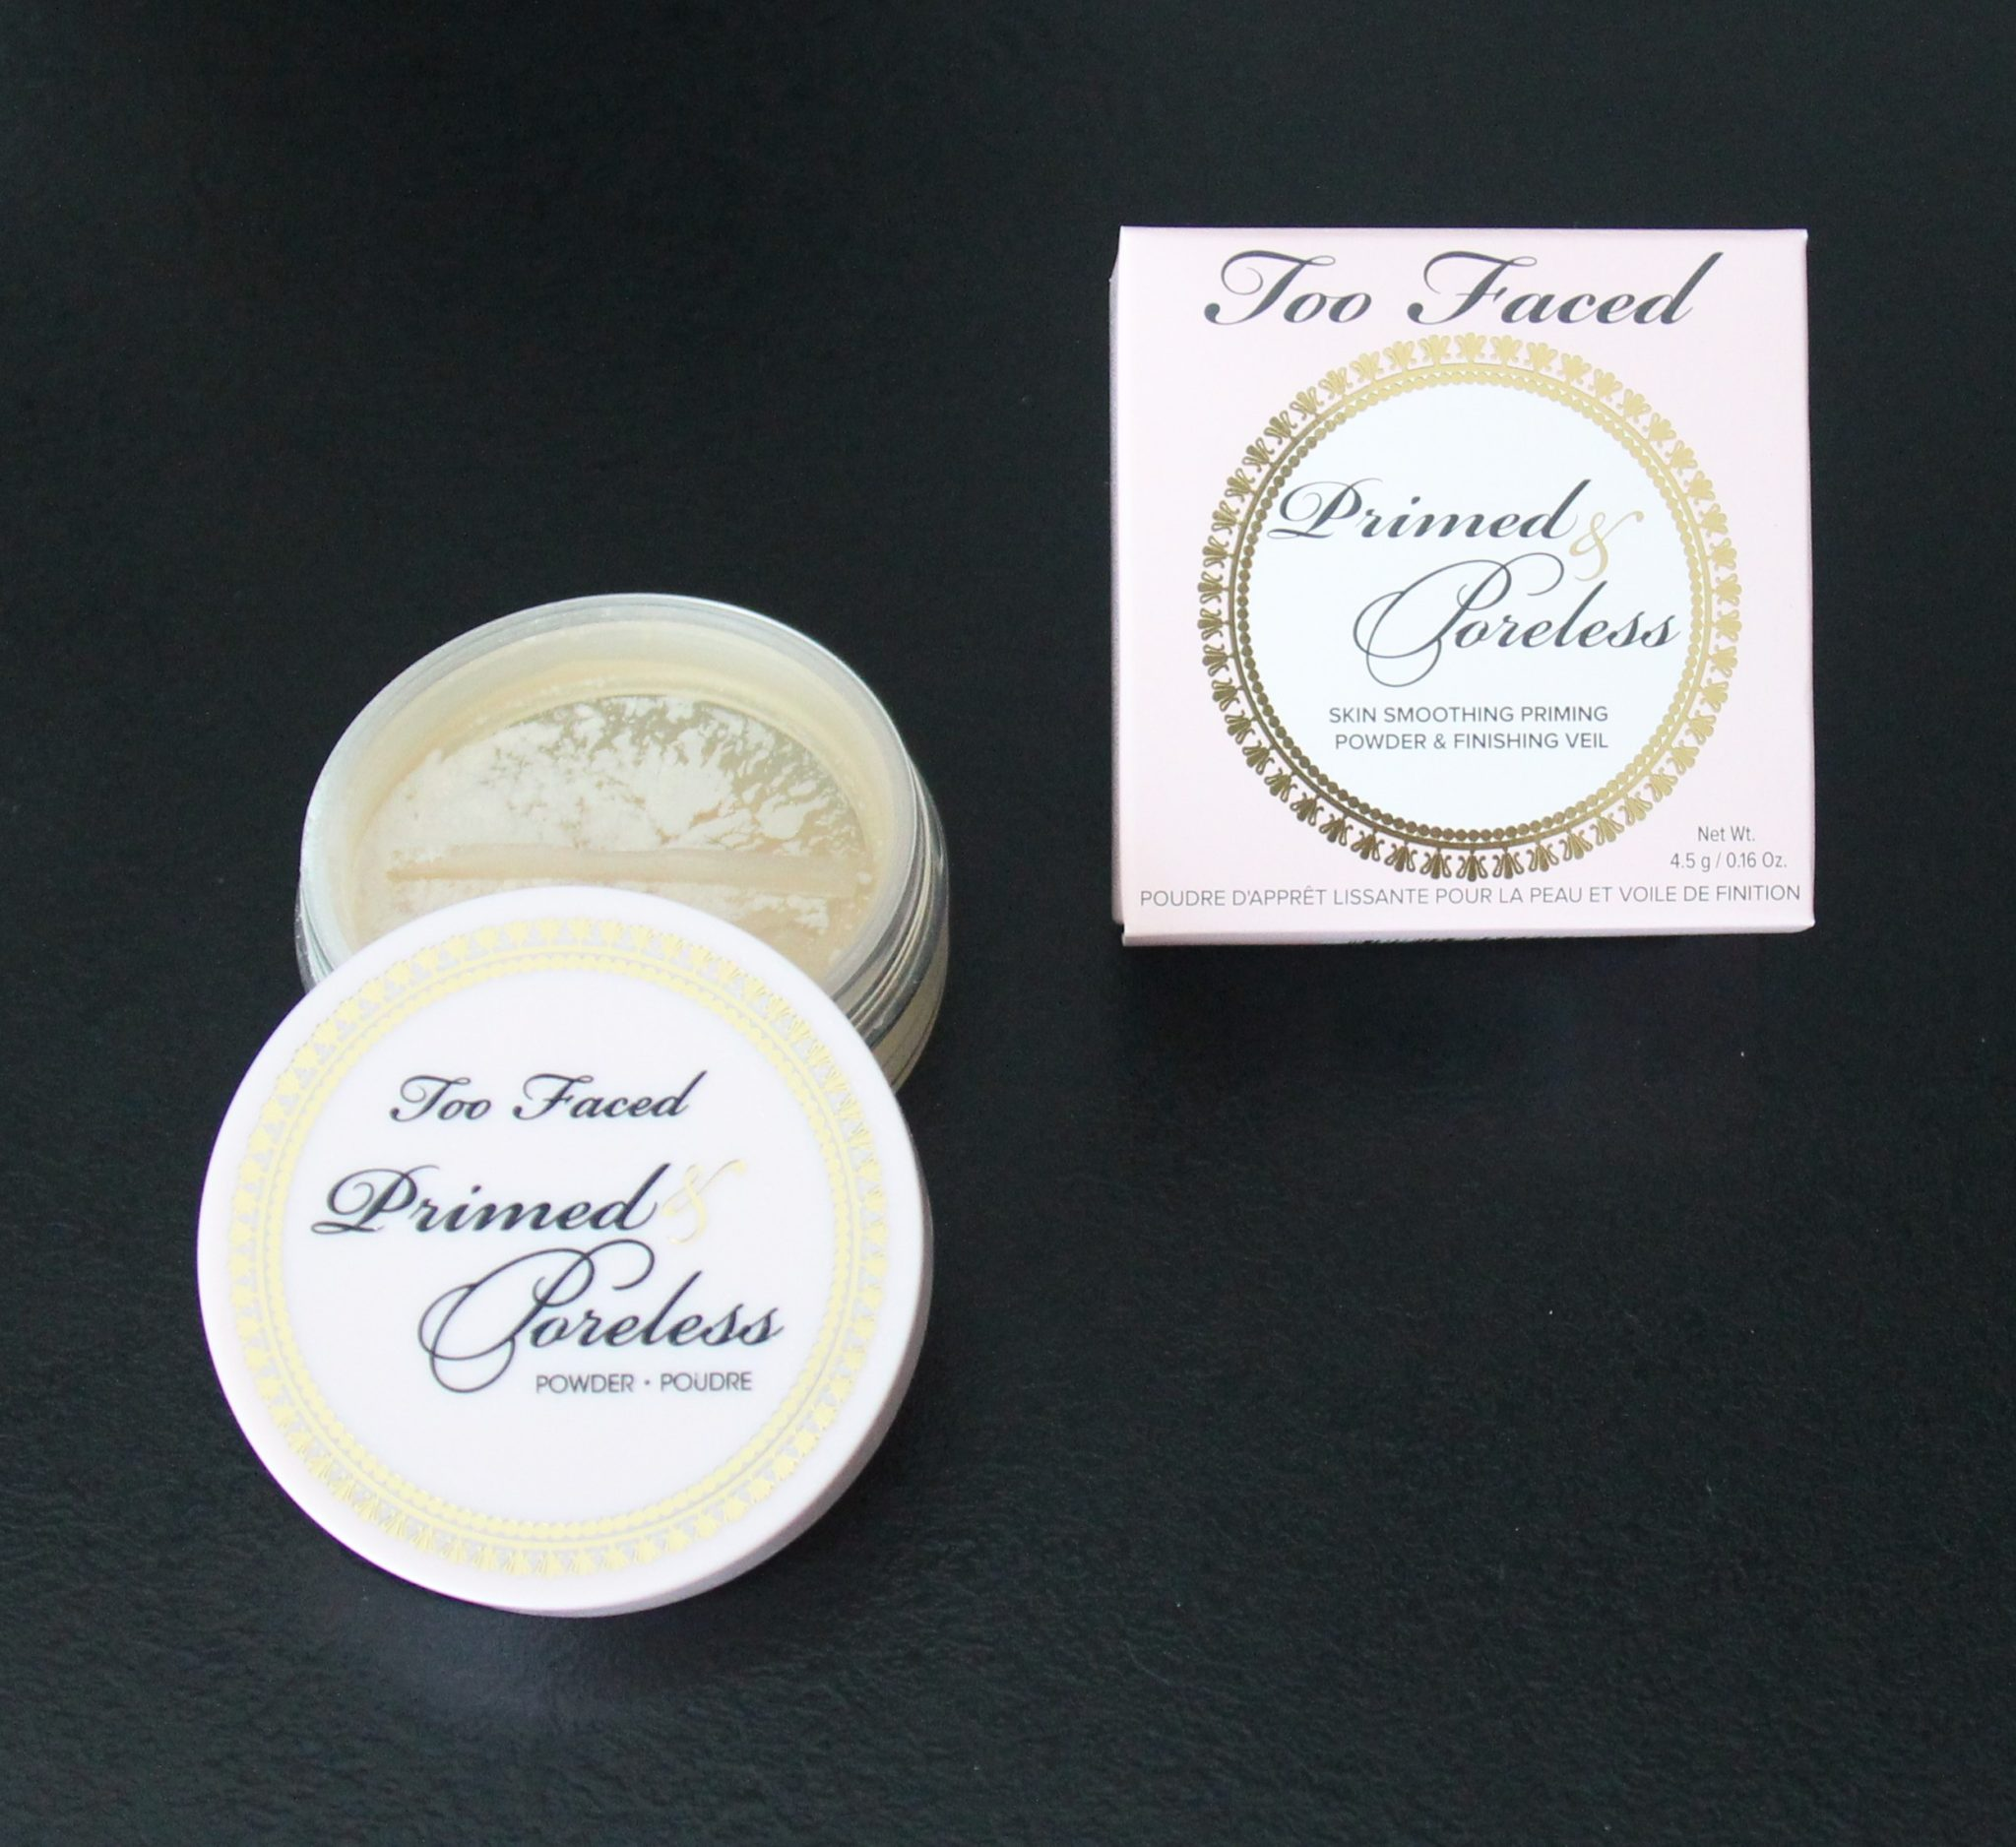 Too Faced Primed Poreless Powder Poudre Dis Moi Céline 1